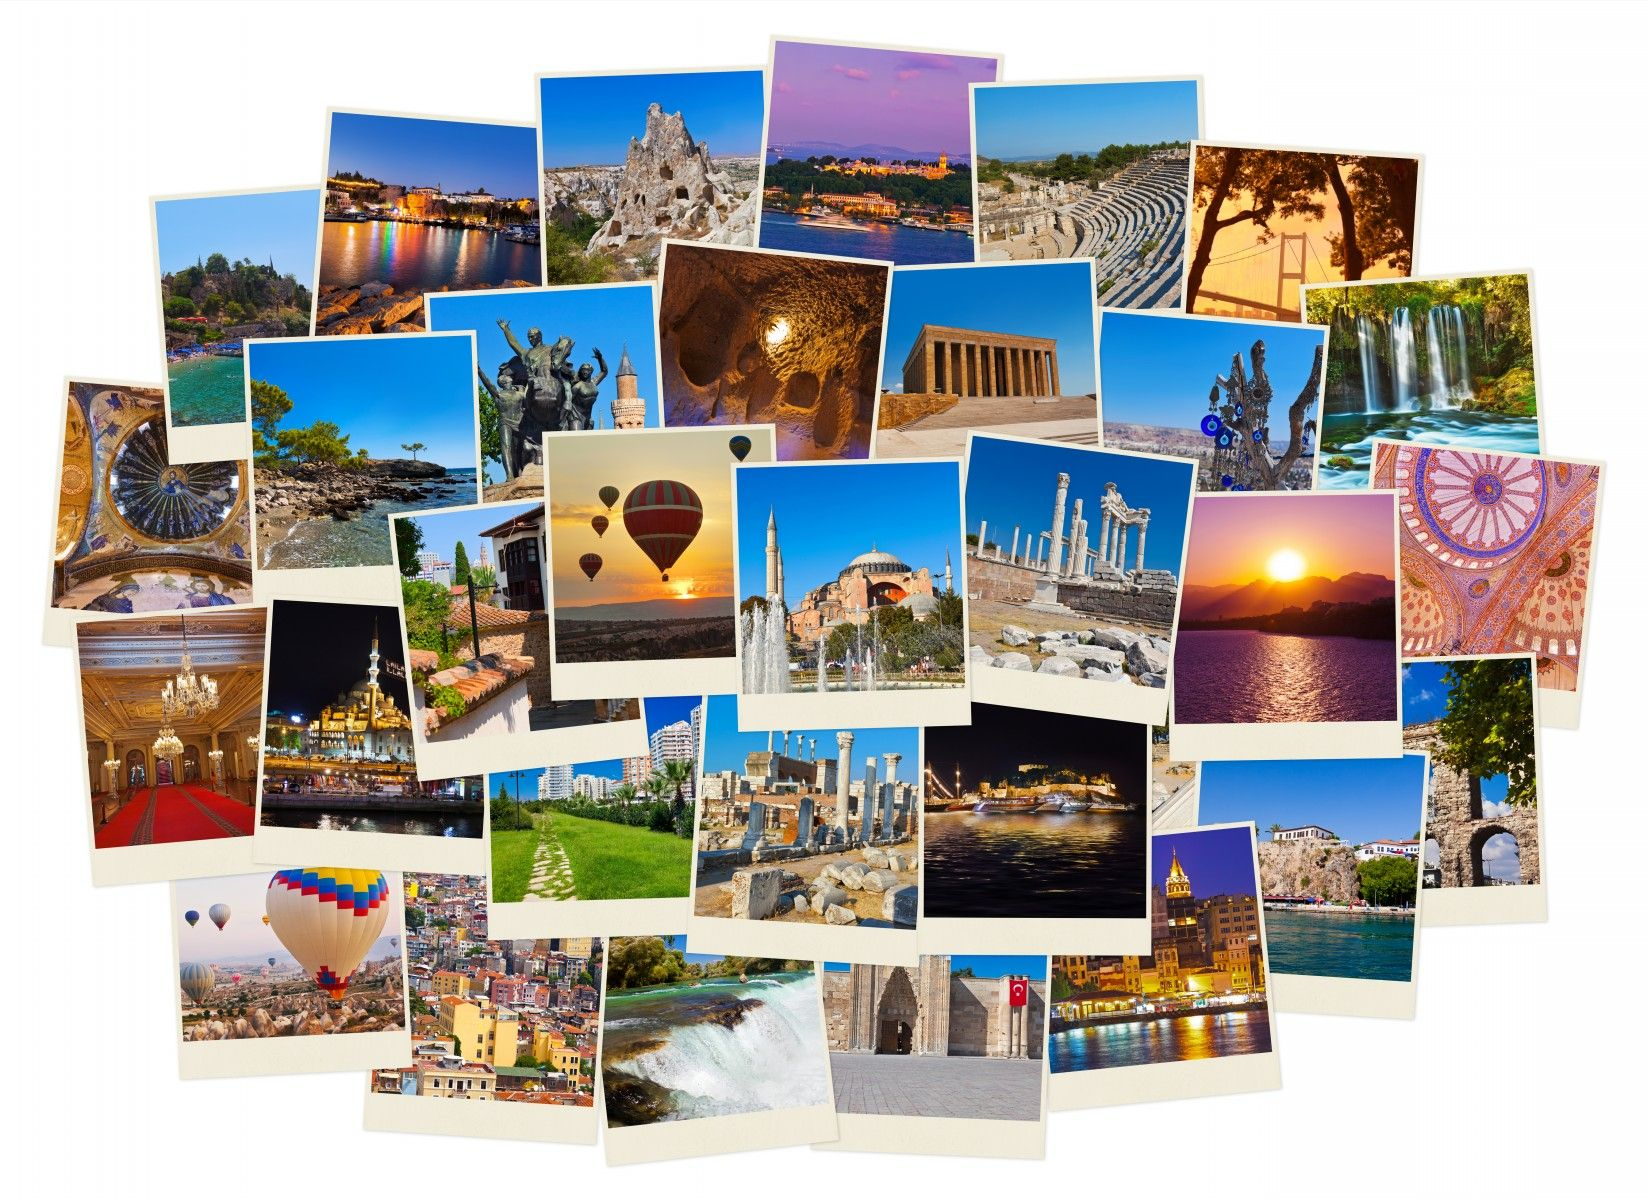 Turkey is a tourism paradise preferred by all the countries of the world with its many cultural values and natural beauties.